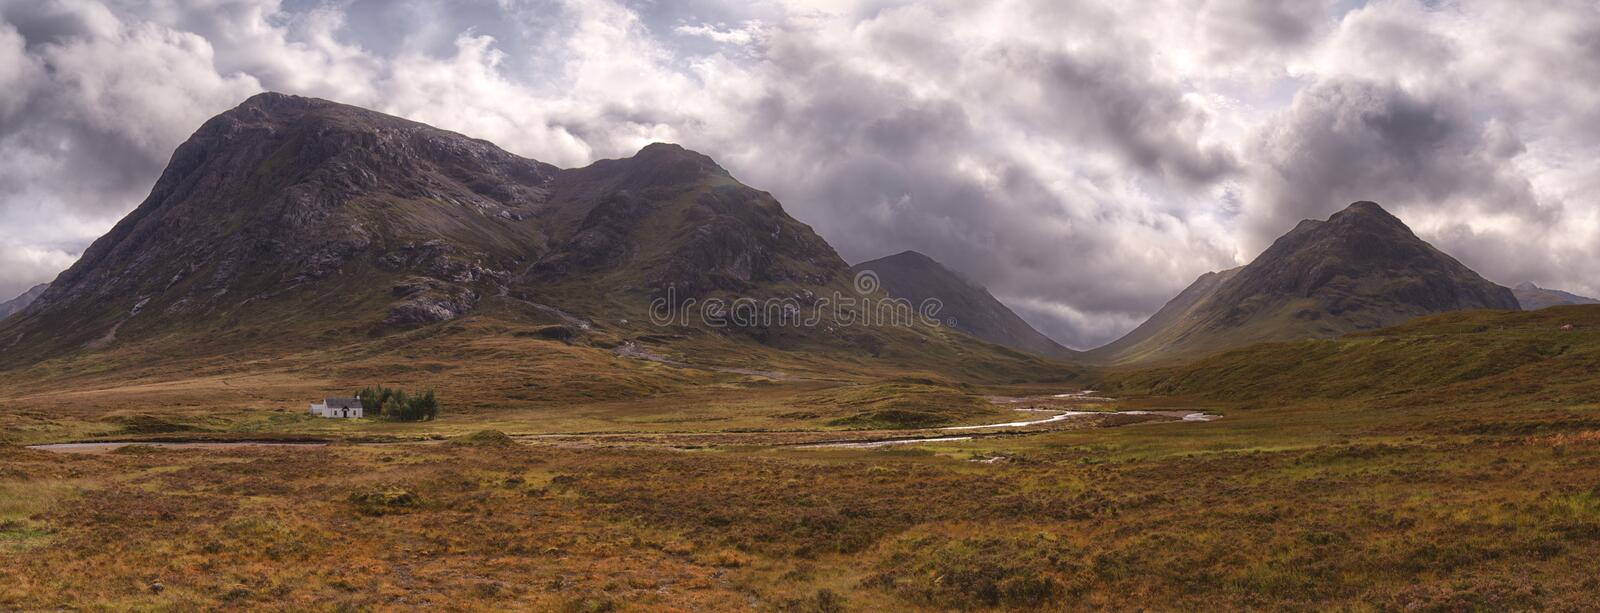 Panorama, grey clouds gather over Buachaille Etive Mor, Altnafeadh, Glencoe, Scotland. stock images